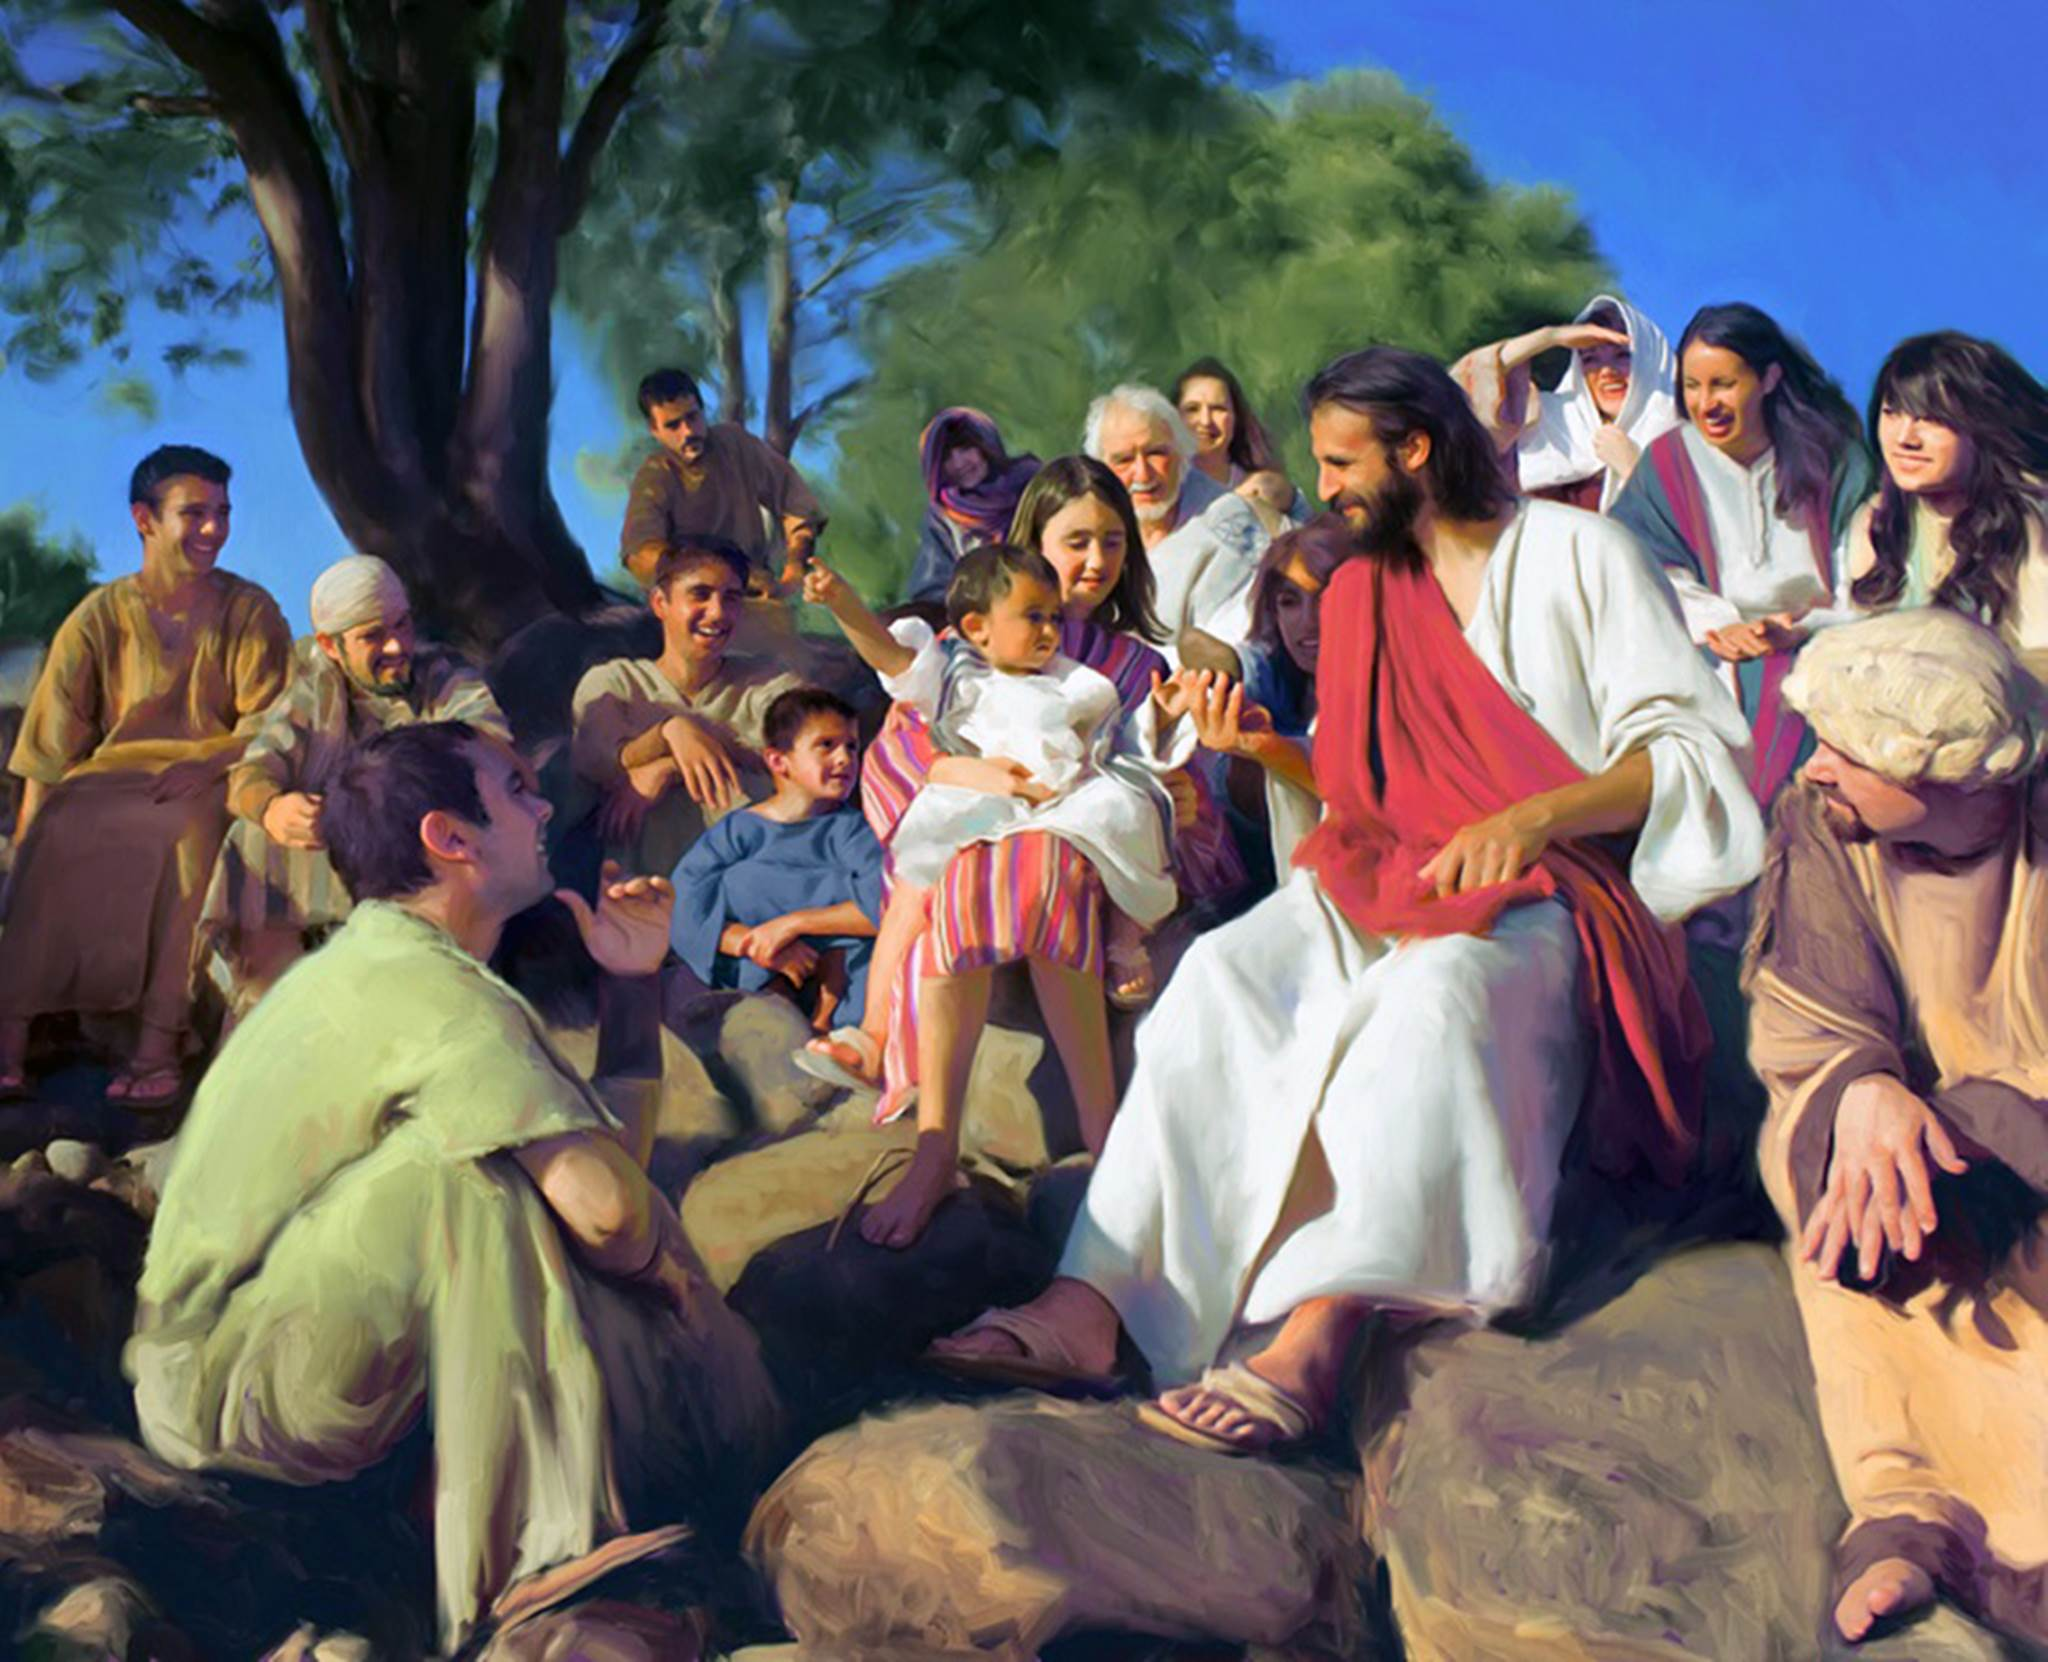 Chua giang day, Jesus on the mount, Jesus teaching